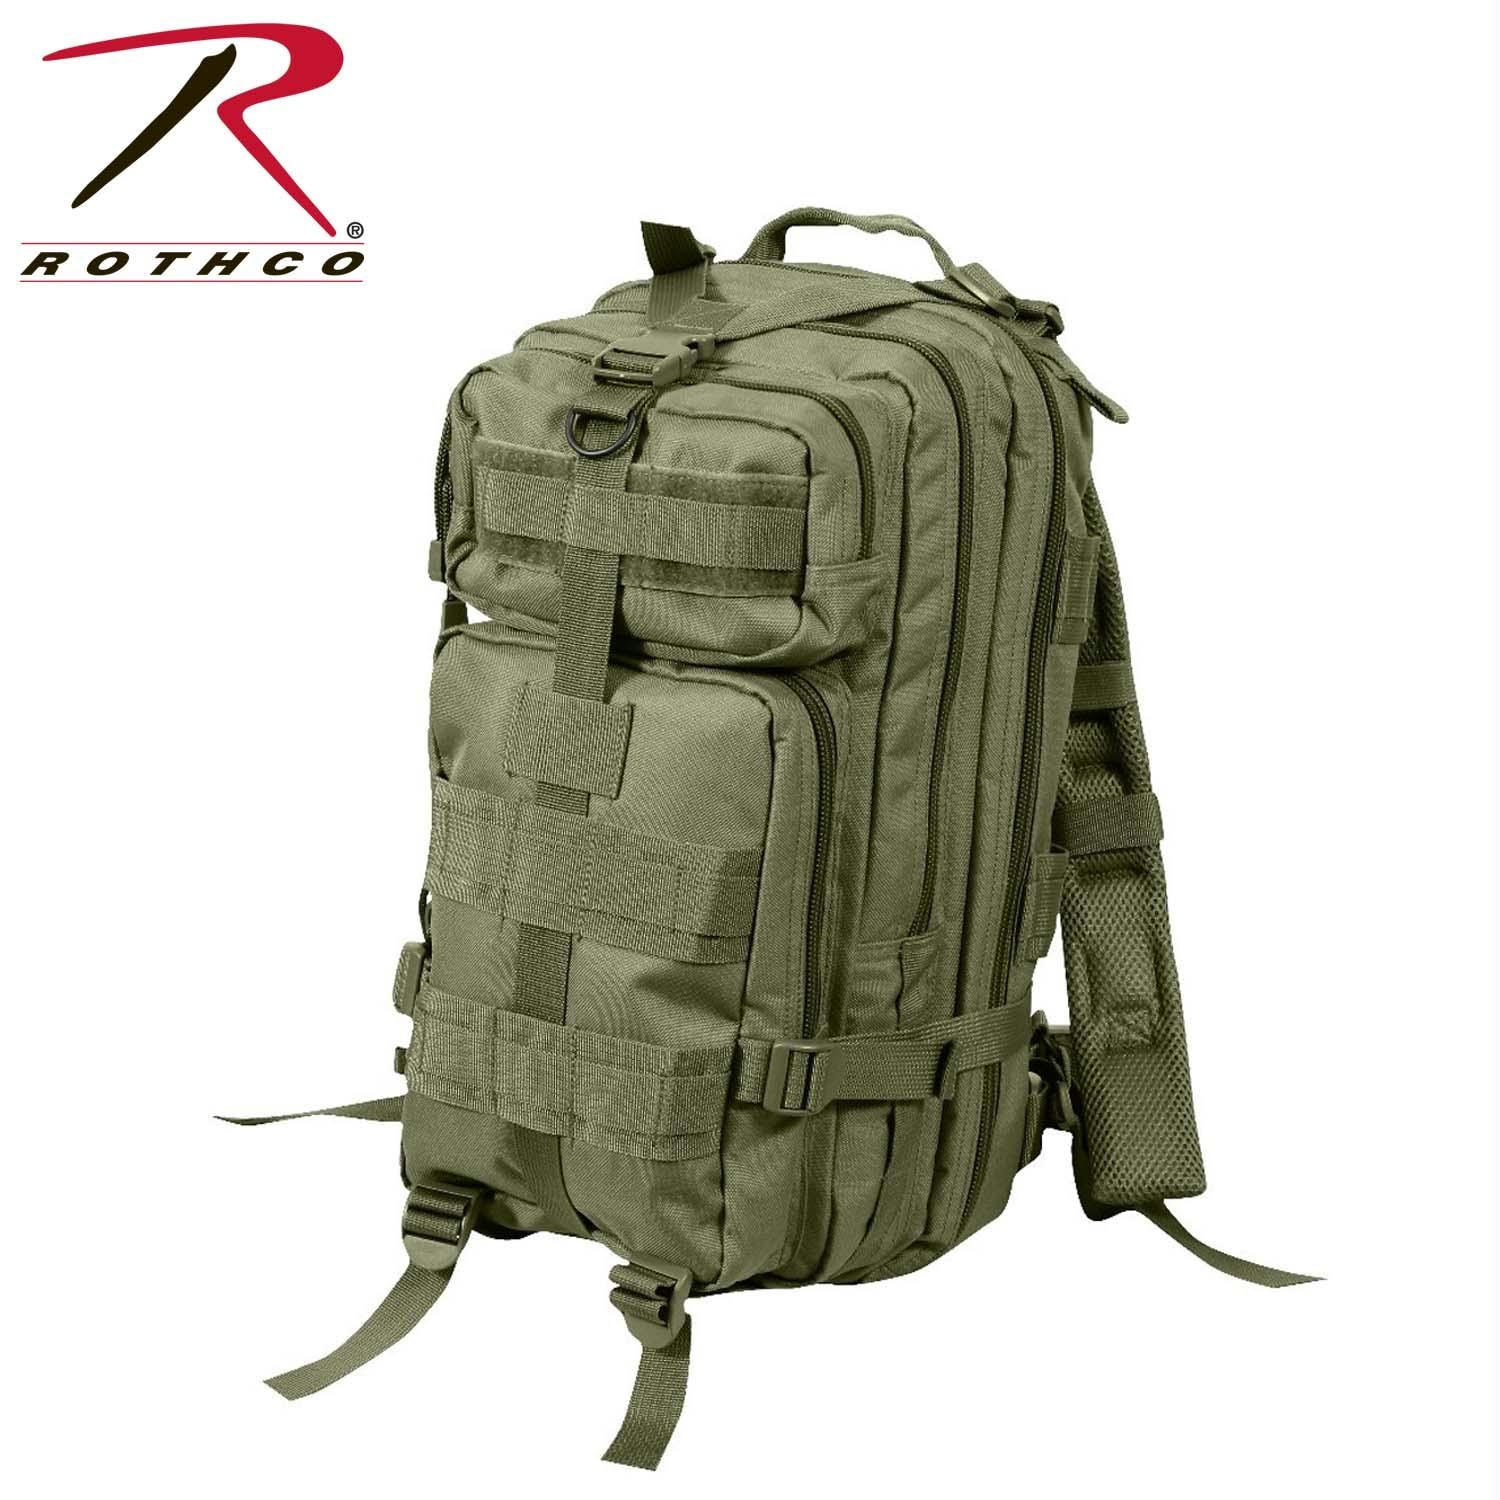 Rothco Medium Transport Pack - Olive Drab